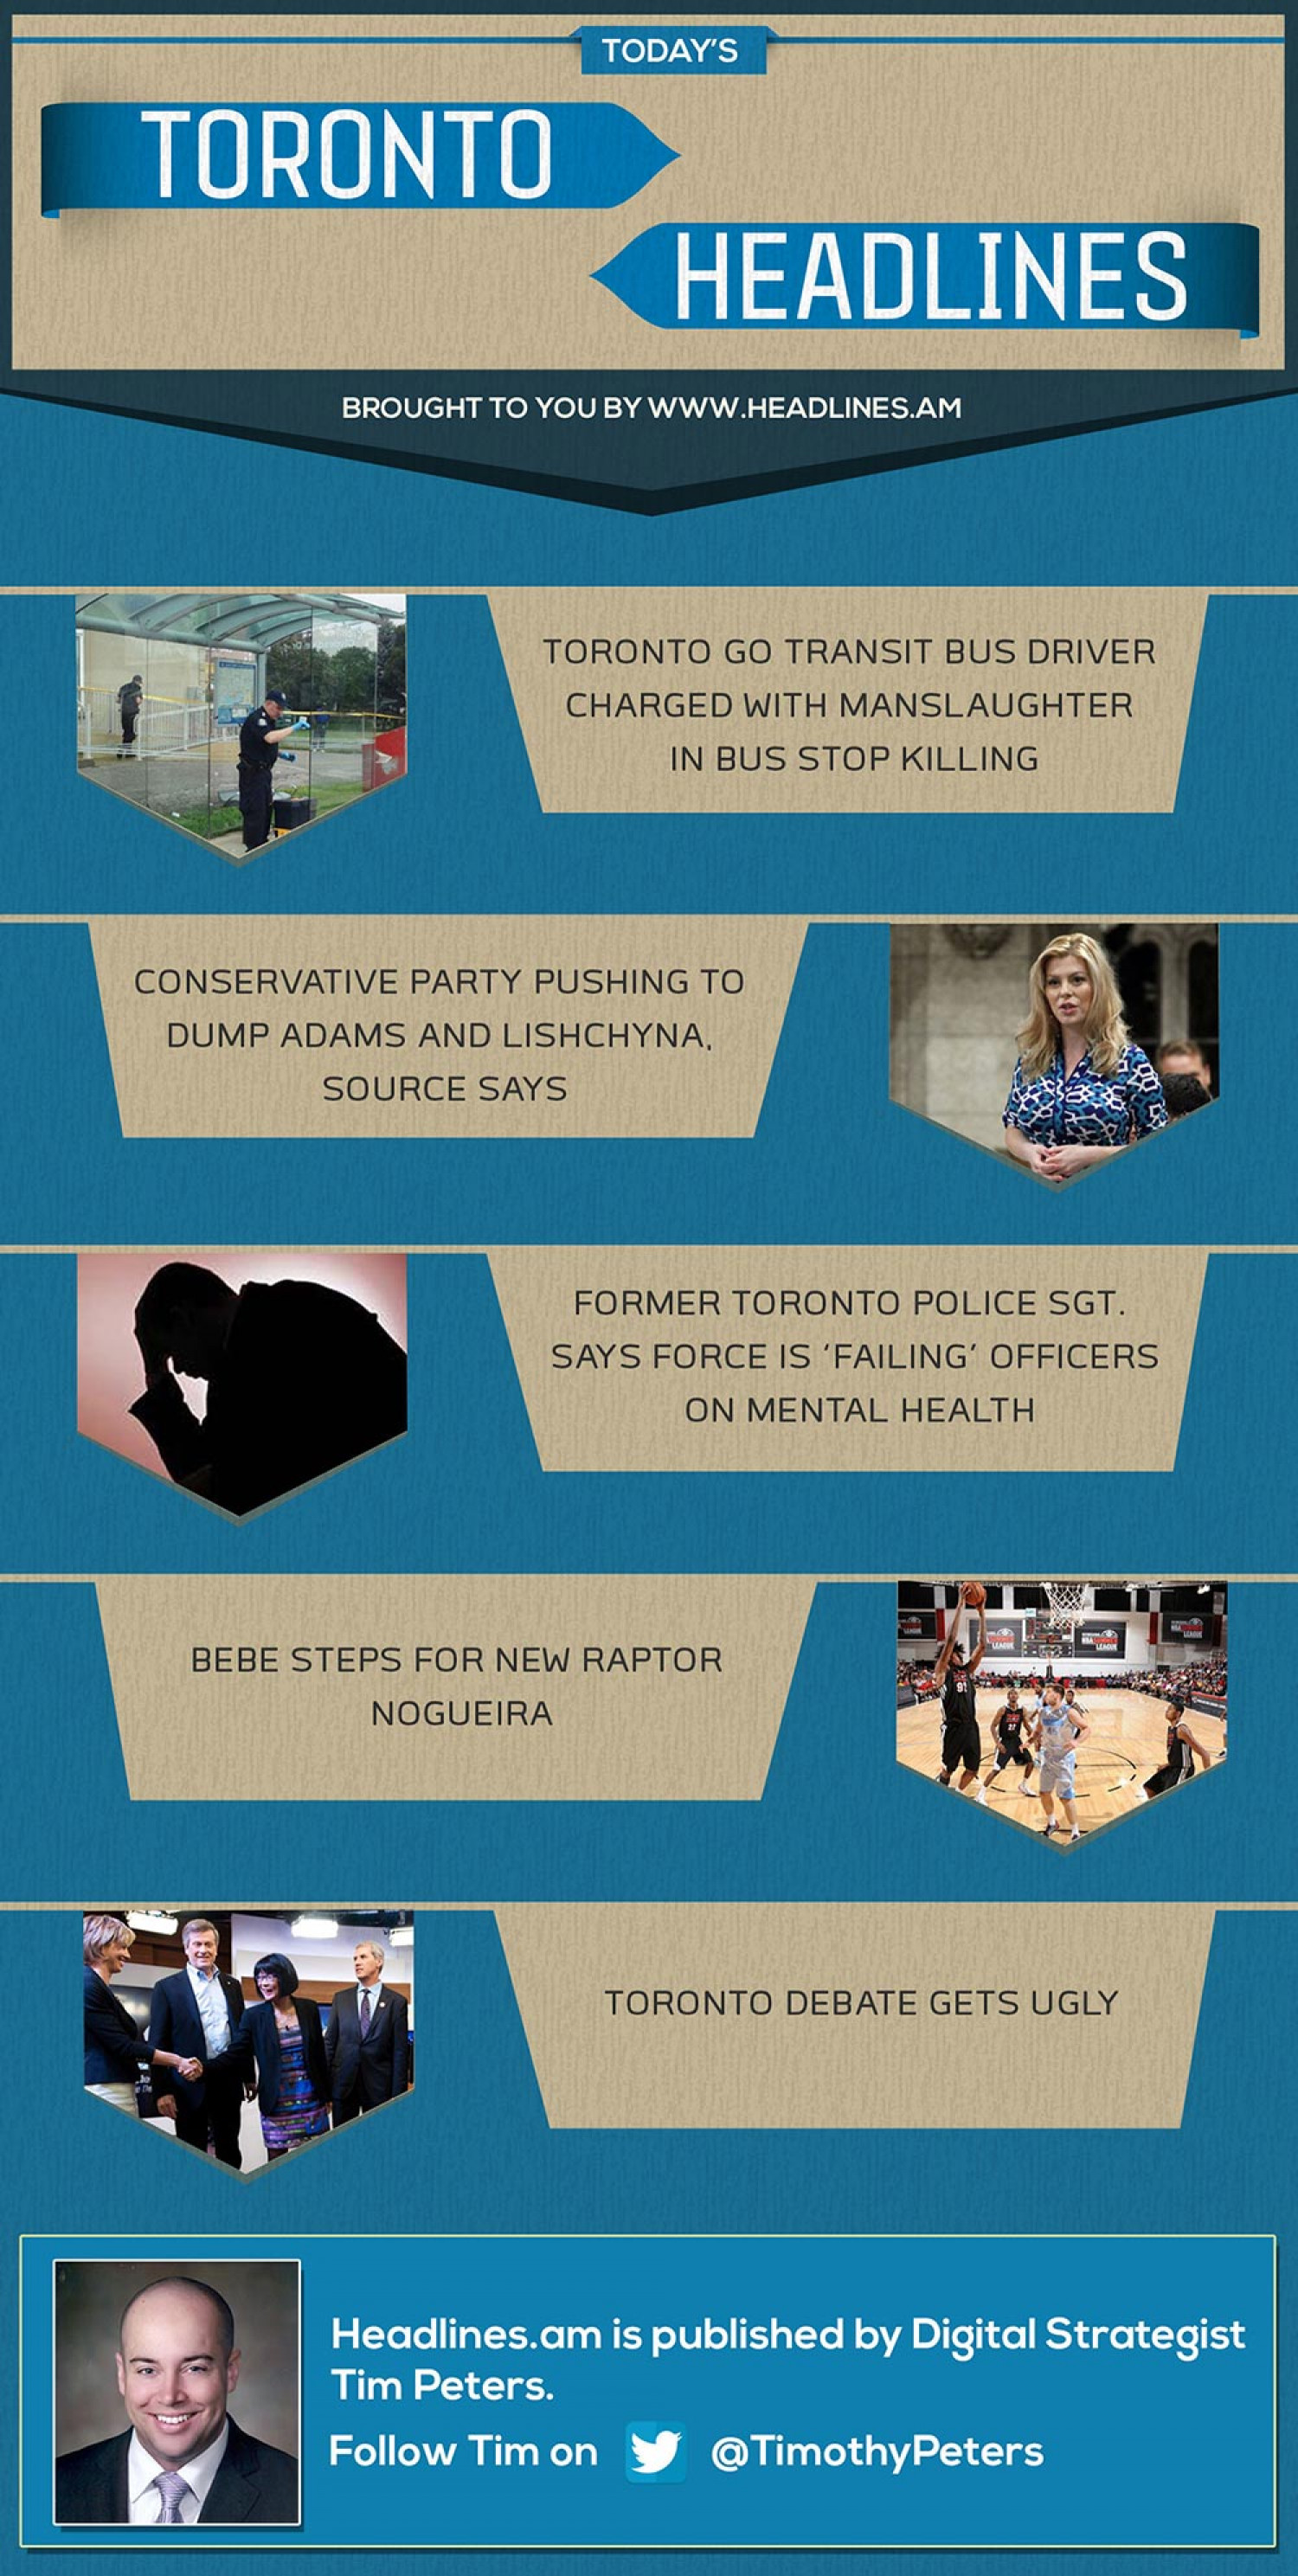 TORONTO NEWS HEADLINES  - July 17, 2014 Infographic